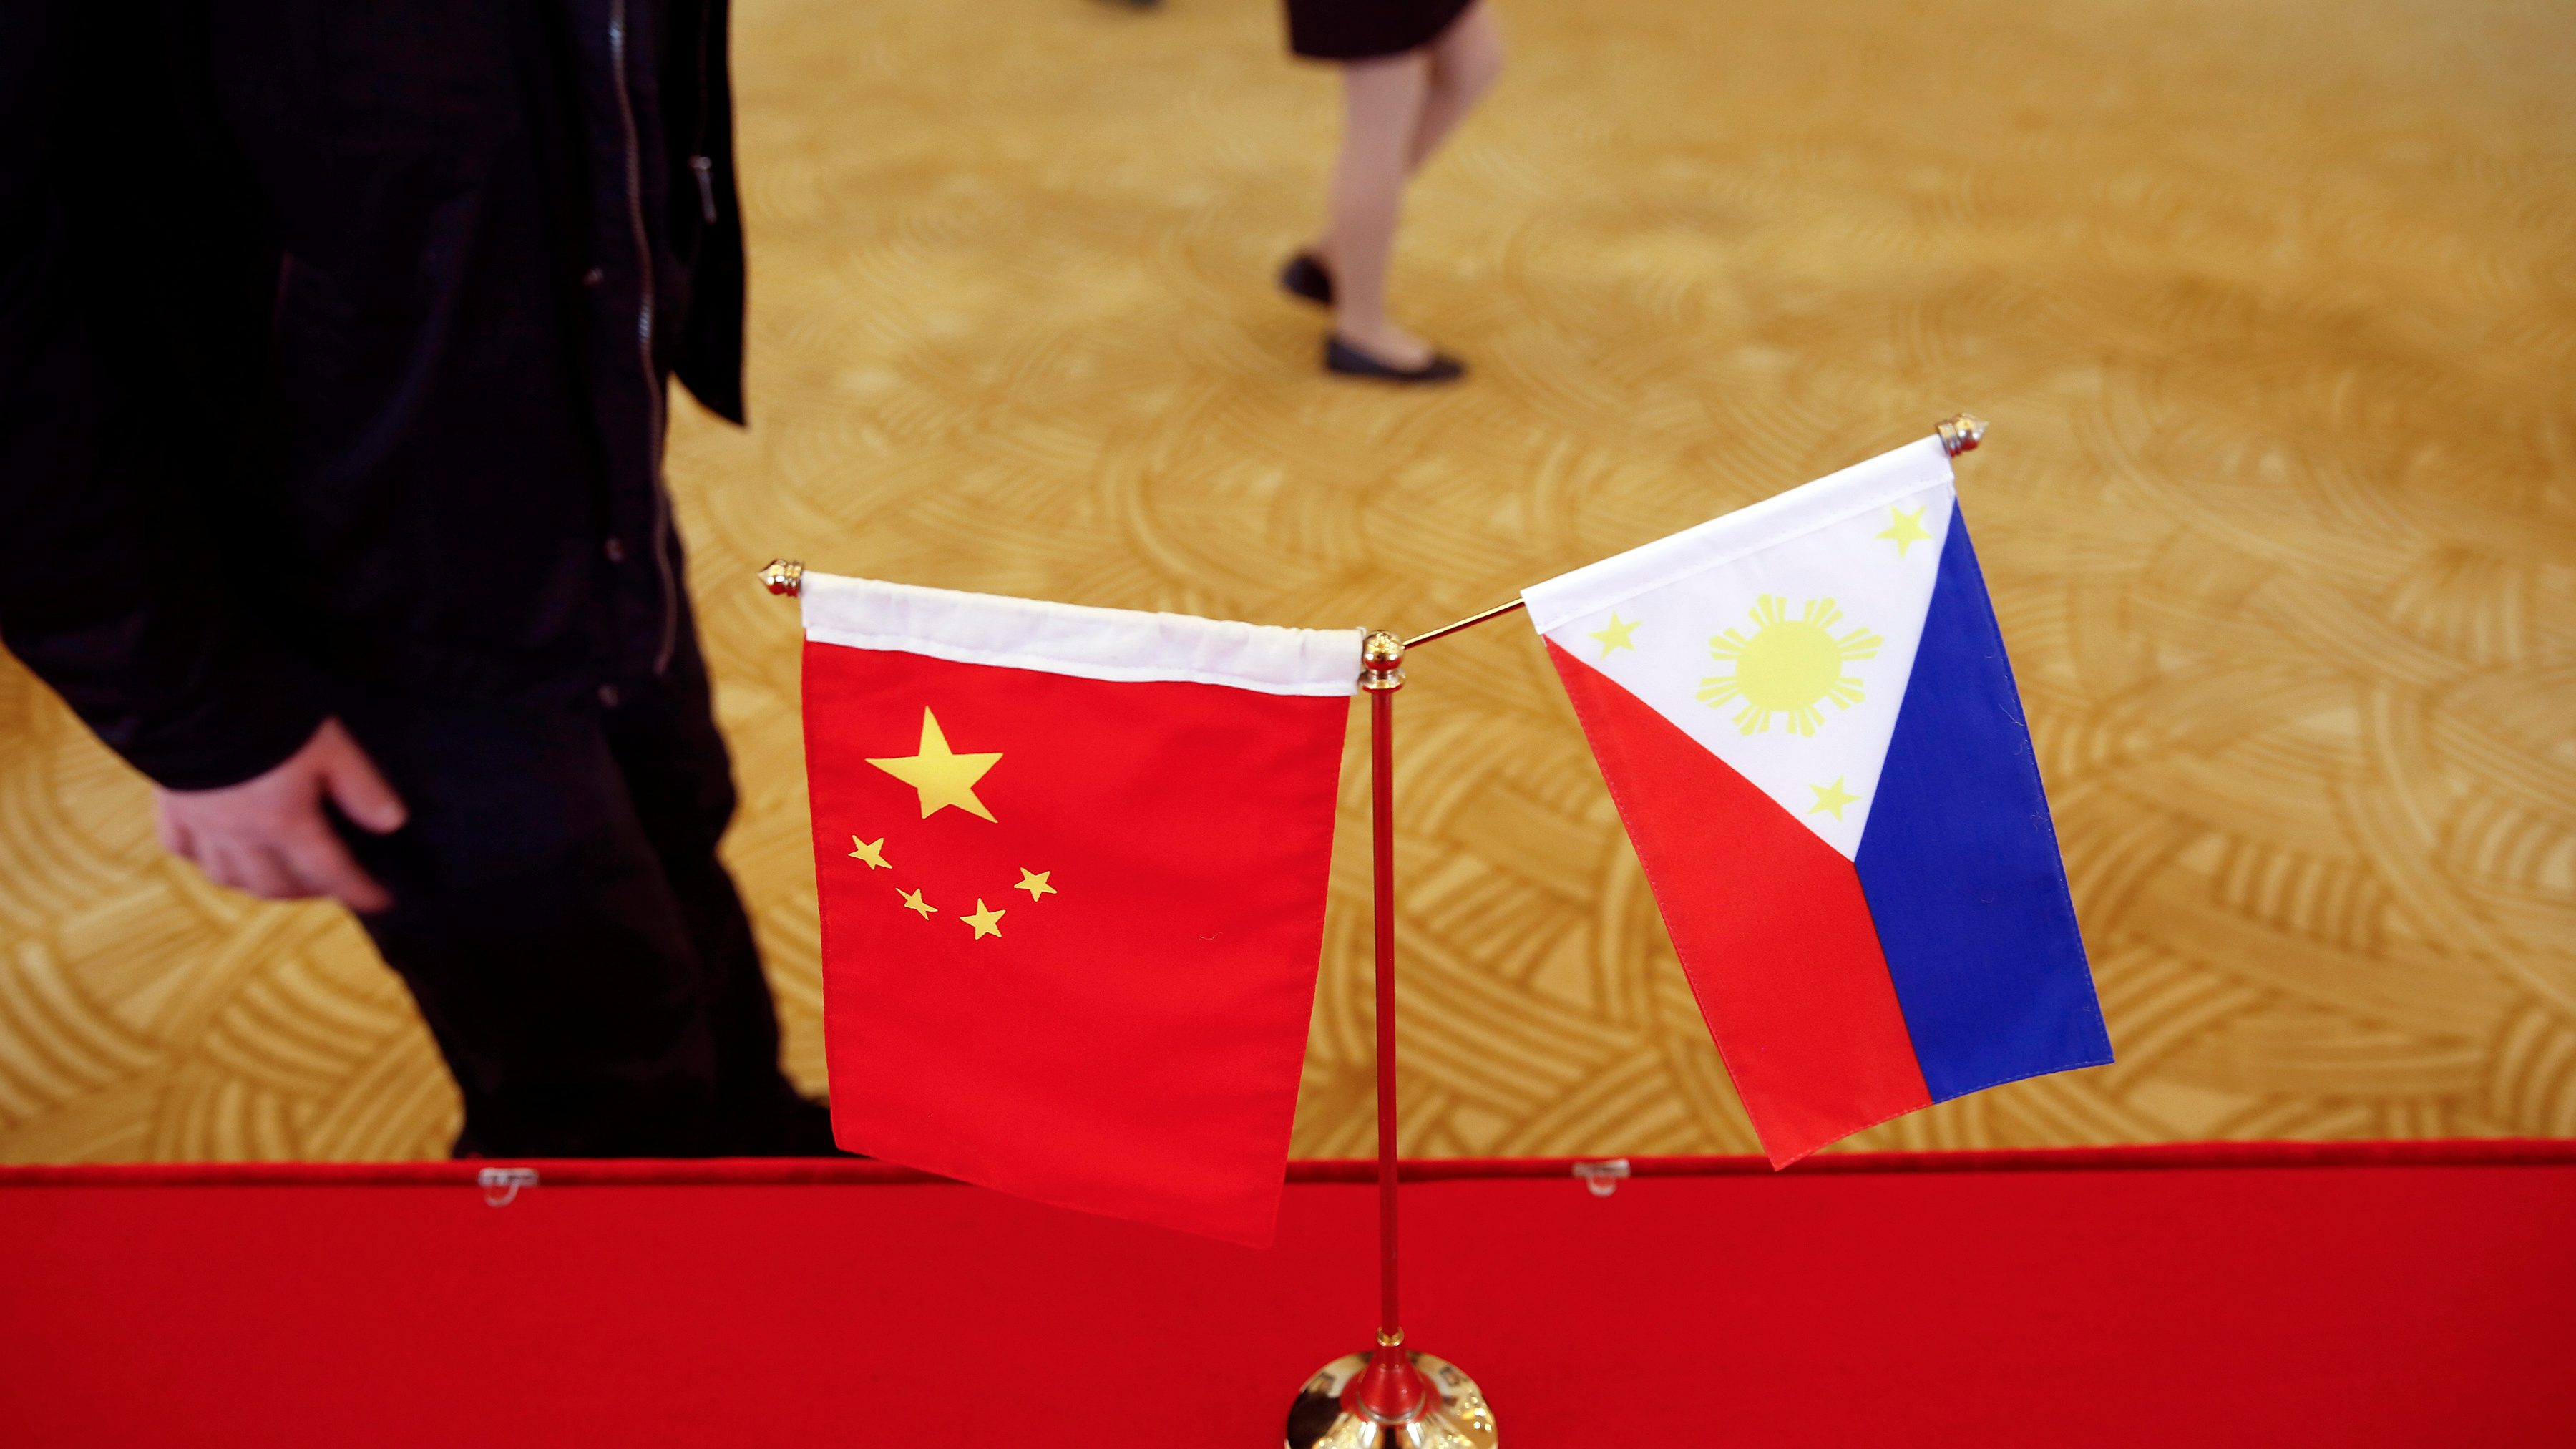 National flags are placed outside a room where Philippine Finance Secretary Carlos Dominguez and China's Commerce Minister Gao Hucheng address reporters after their meeting in Beijing, China, January 23, 2017.